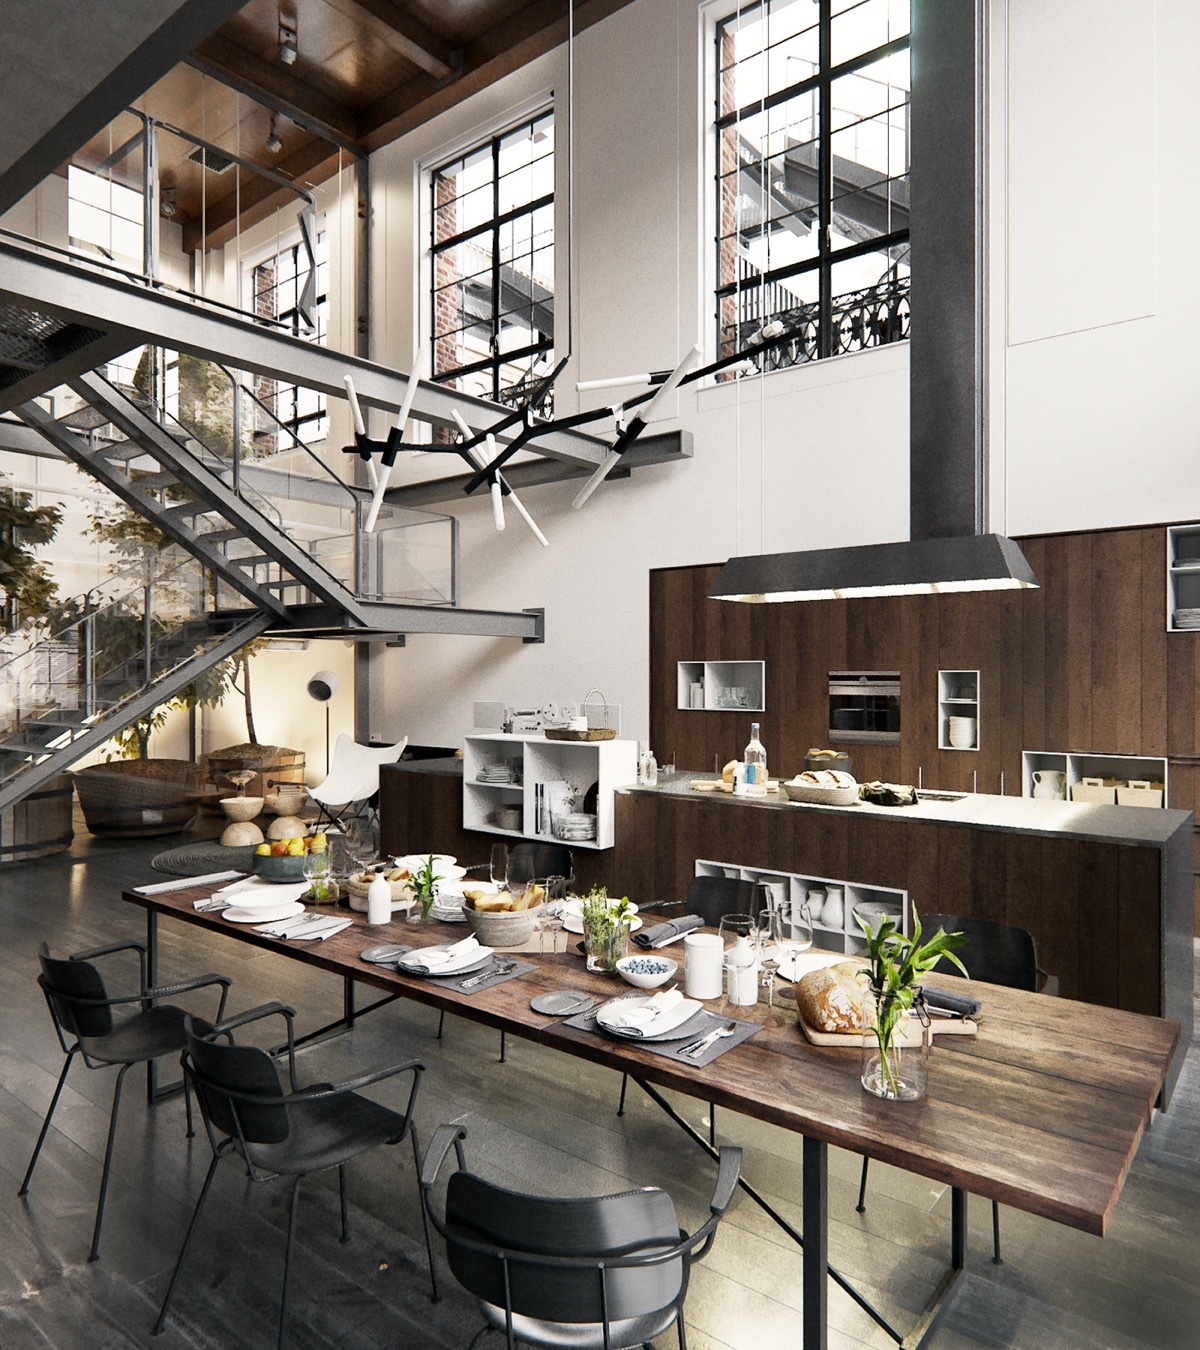 Amazing-Kitchen-Dream-Kitchen-New-York-City-Loft-Kitchen